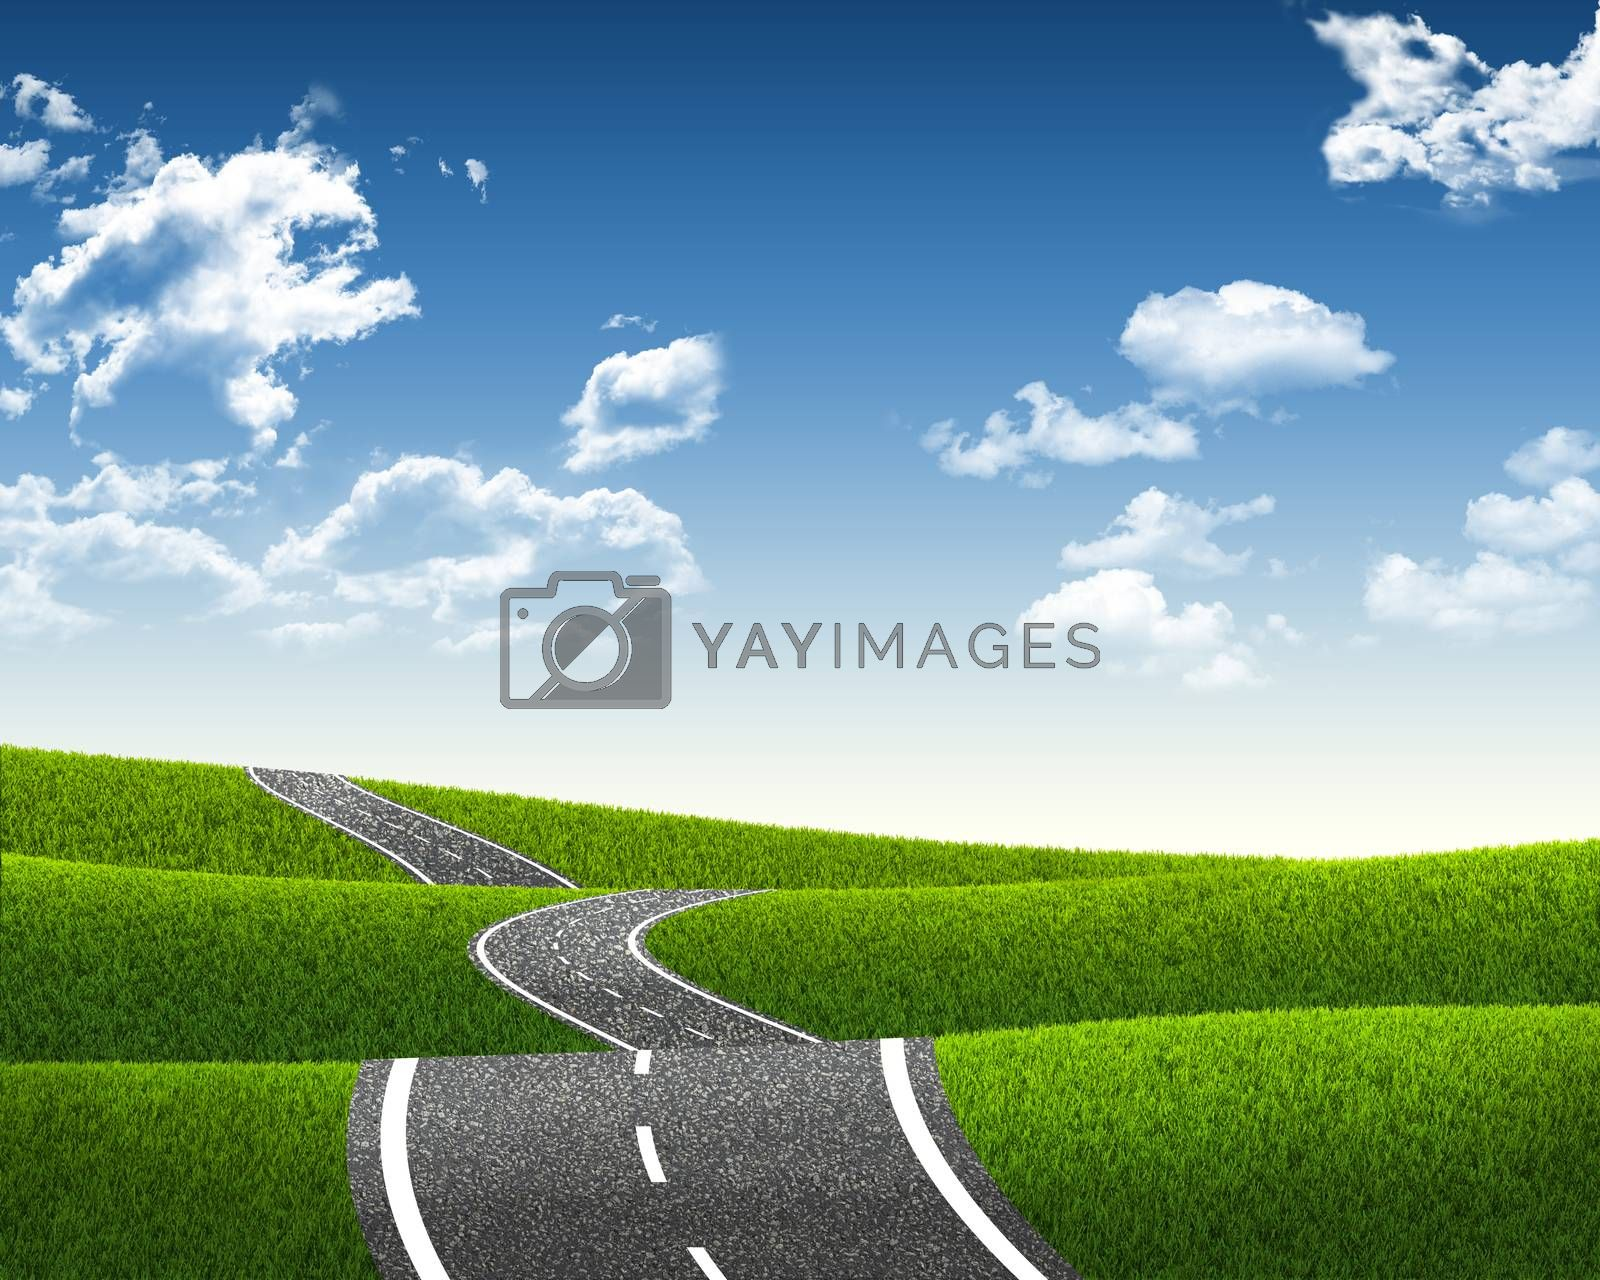 Landscape with road under blue sky with clouds